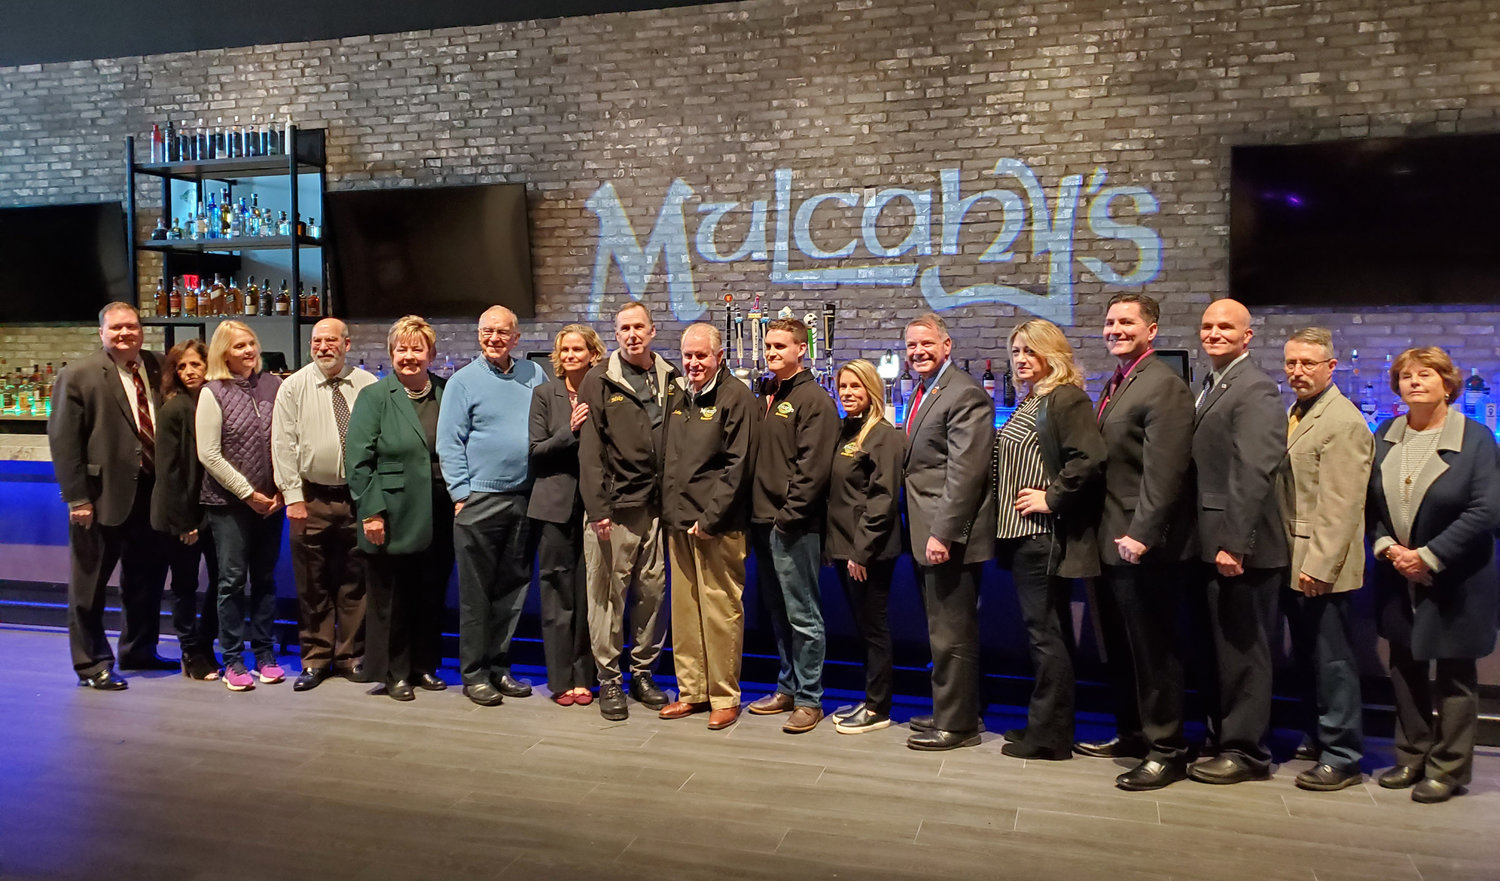 The Wantagh Chamber of Commerce held the official ribbon-cutting for the reopening of Mulcahy's after its extension was unveiled.